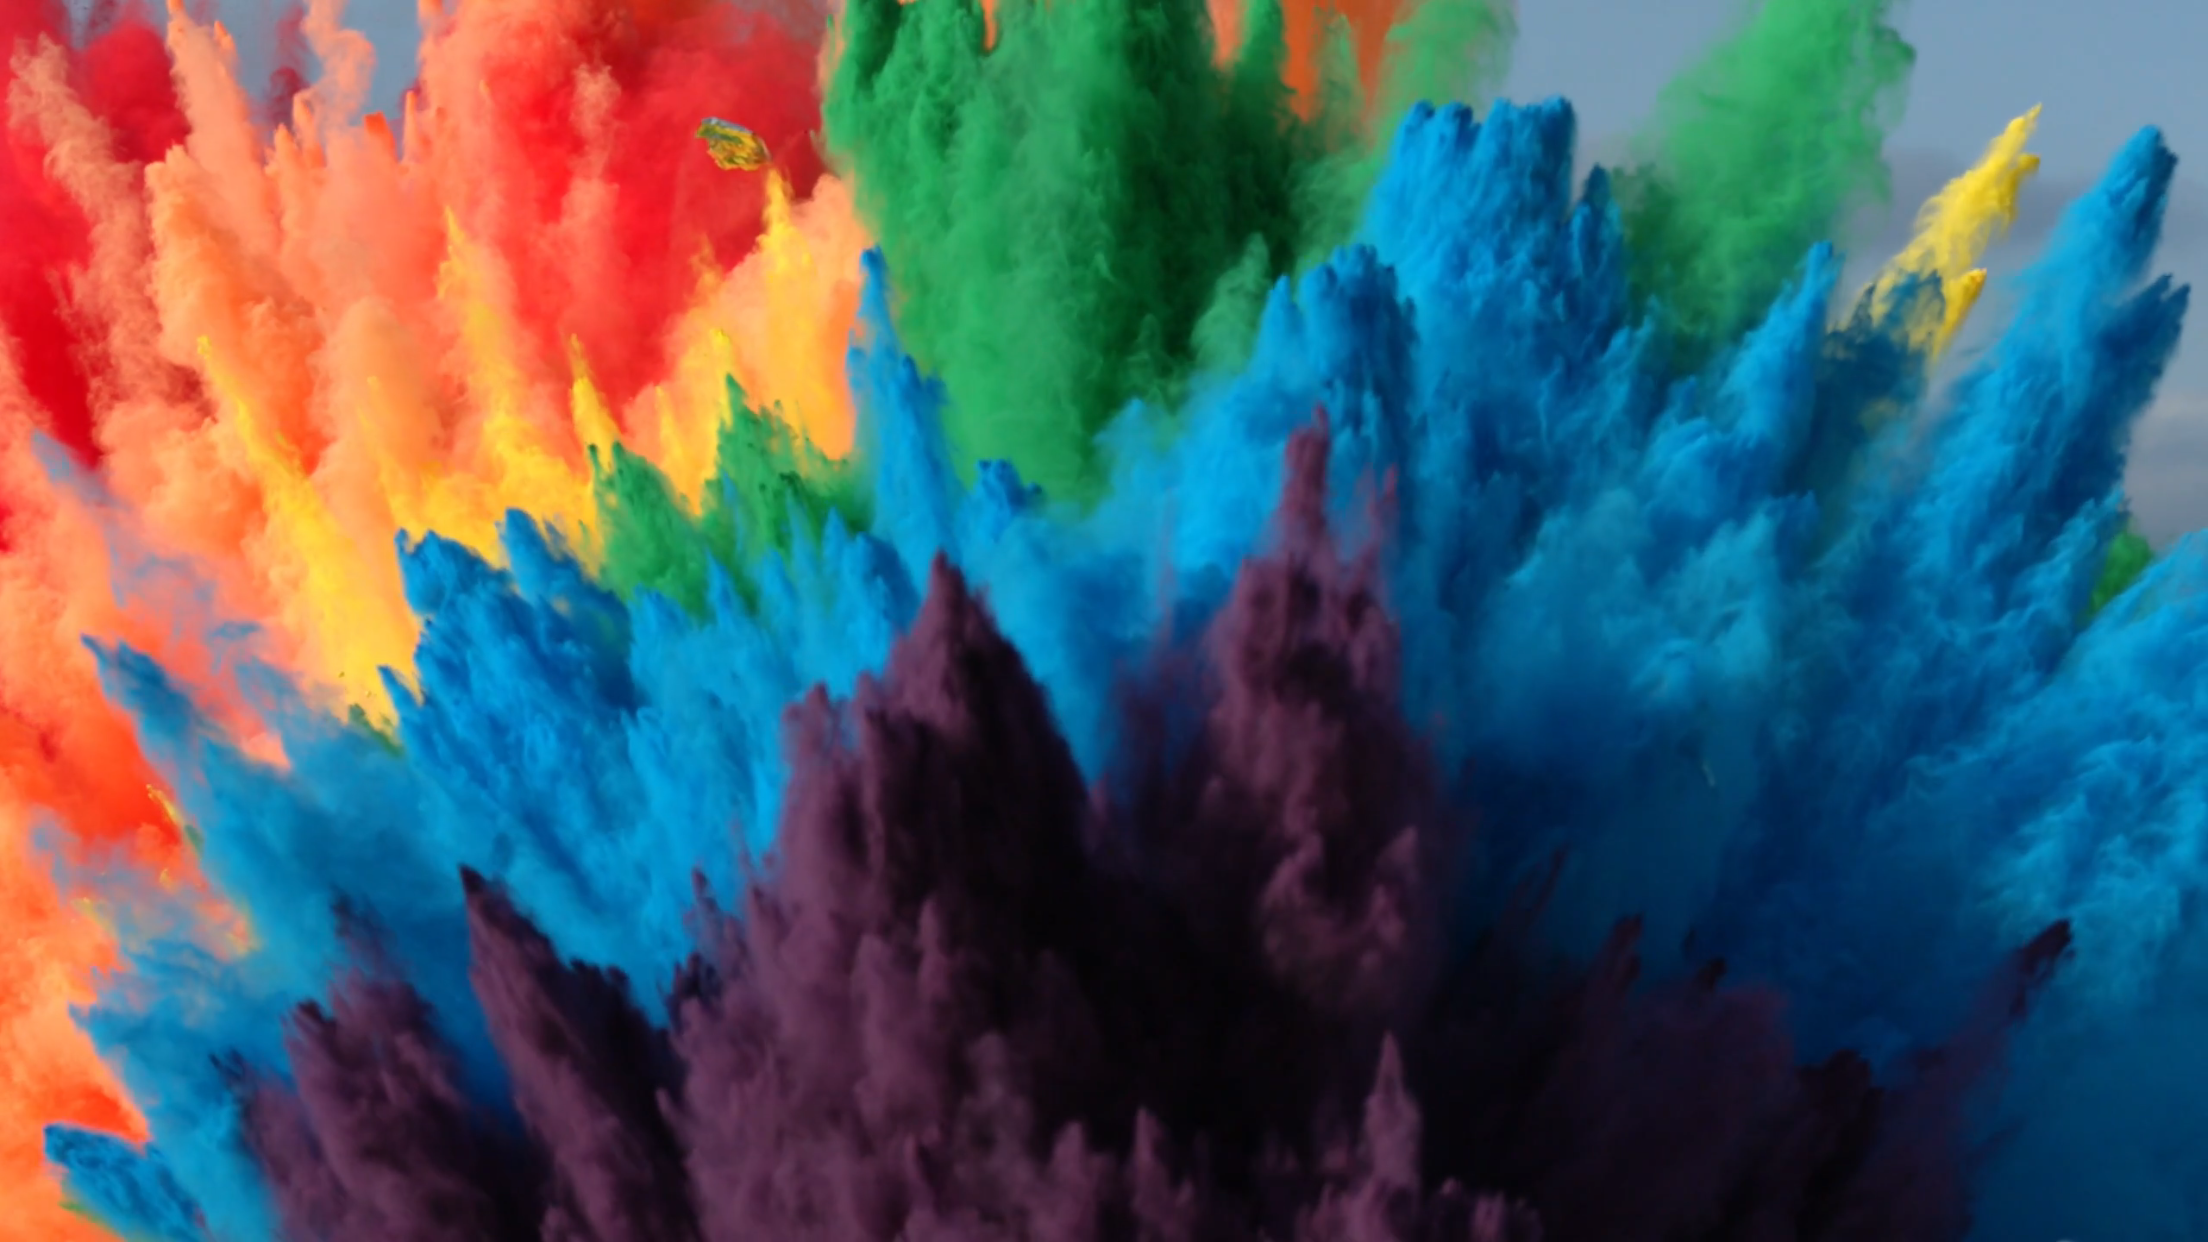 25 Airbags Rainbow Explosion In 4k The Slow Mo Guys Painting Holi Photo Explosion